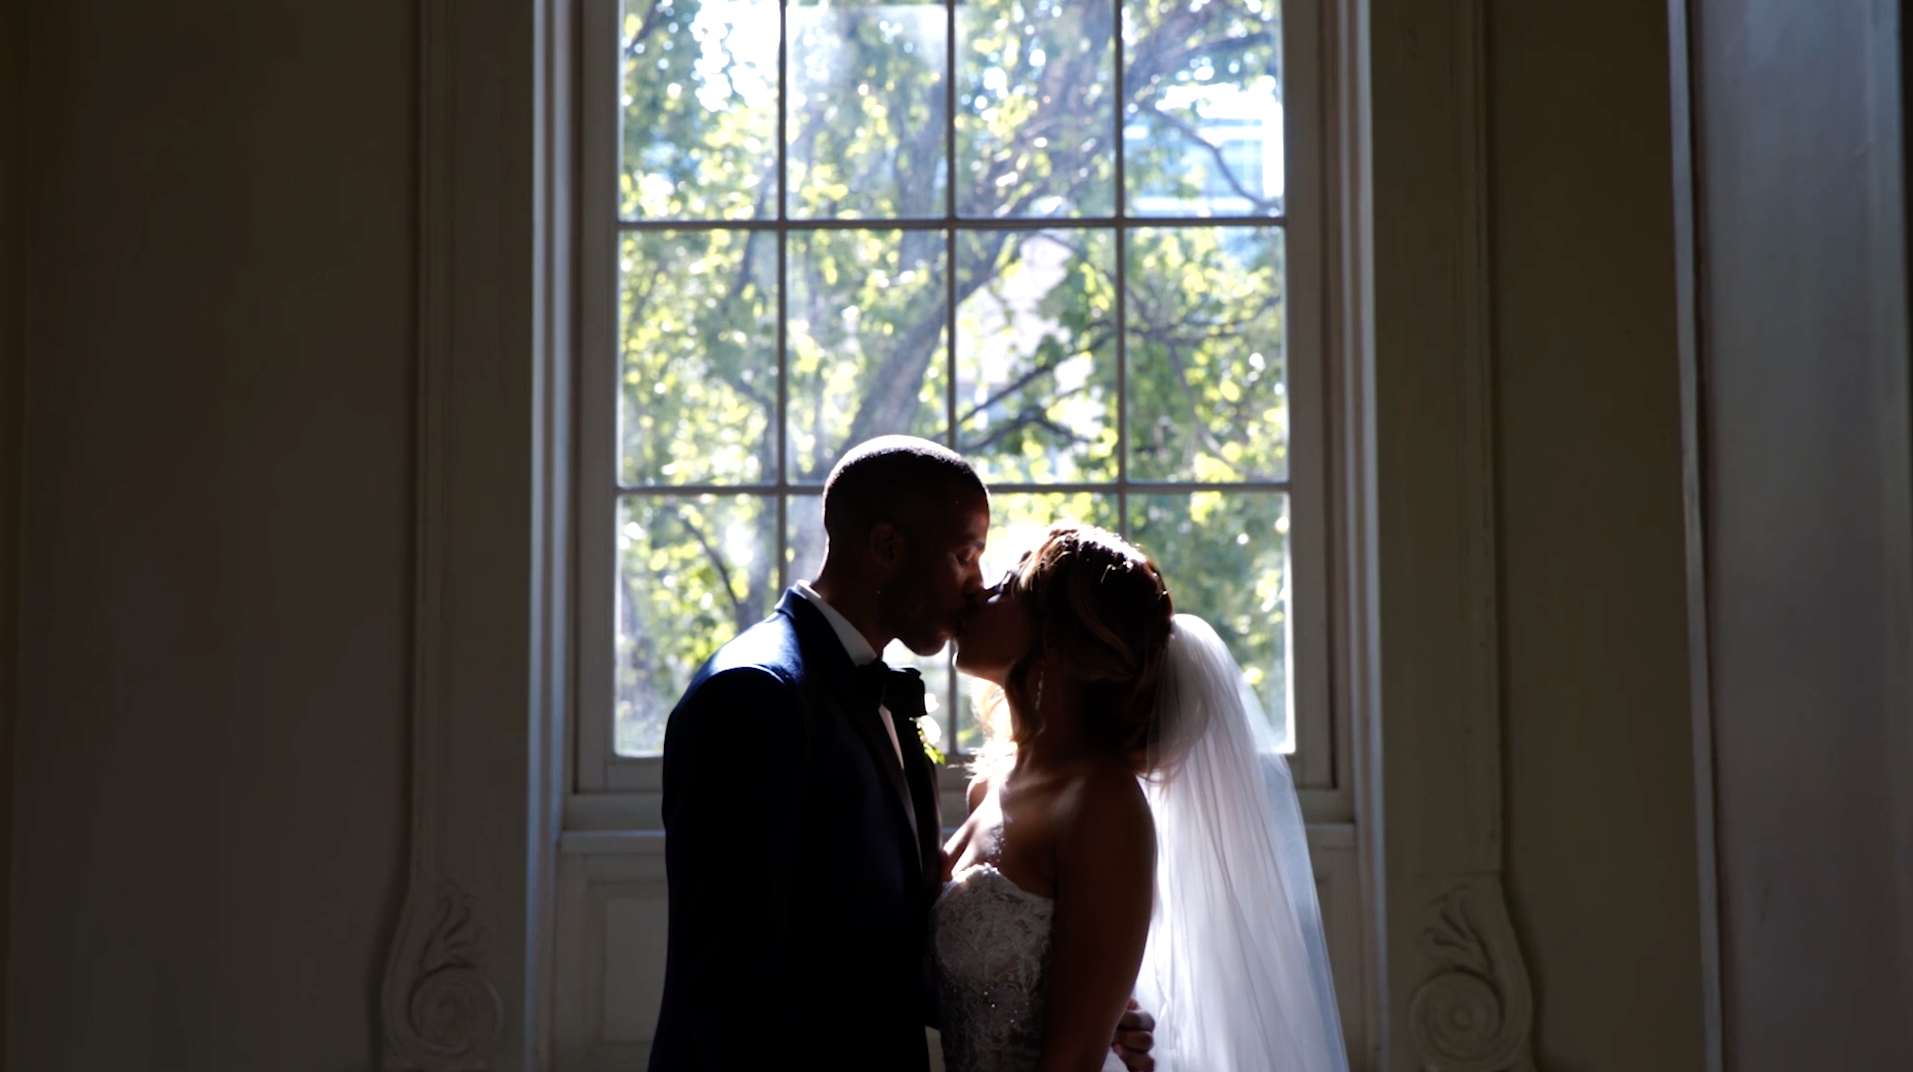 Jeff + Lauren | Atlanta, Georgia | The Biltmore Ballrooms